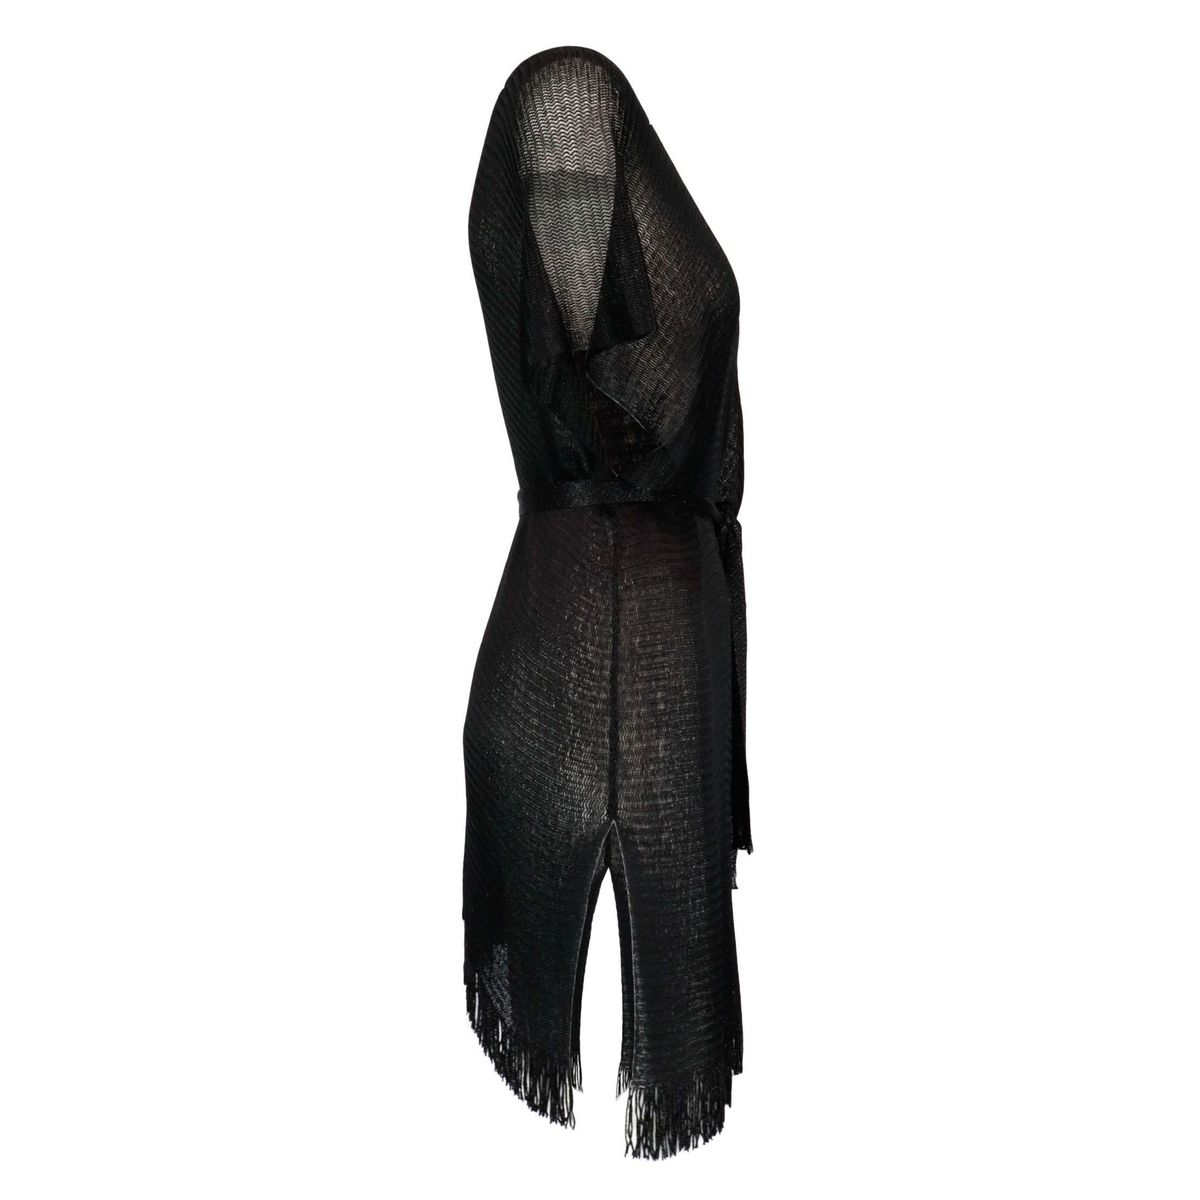 Cover-up Estela knit effect with cross closure Black MC2 Saint Barth